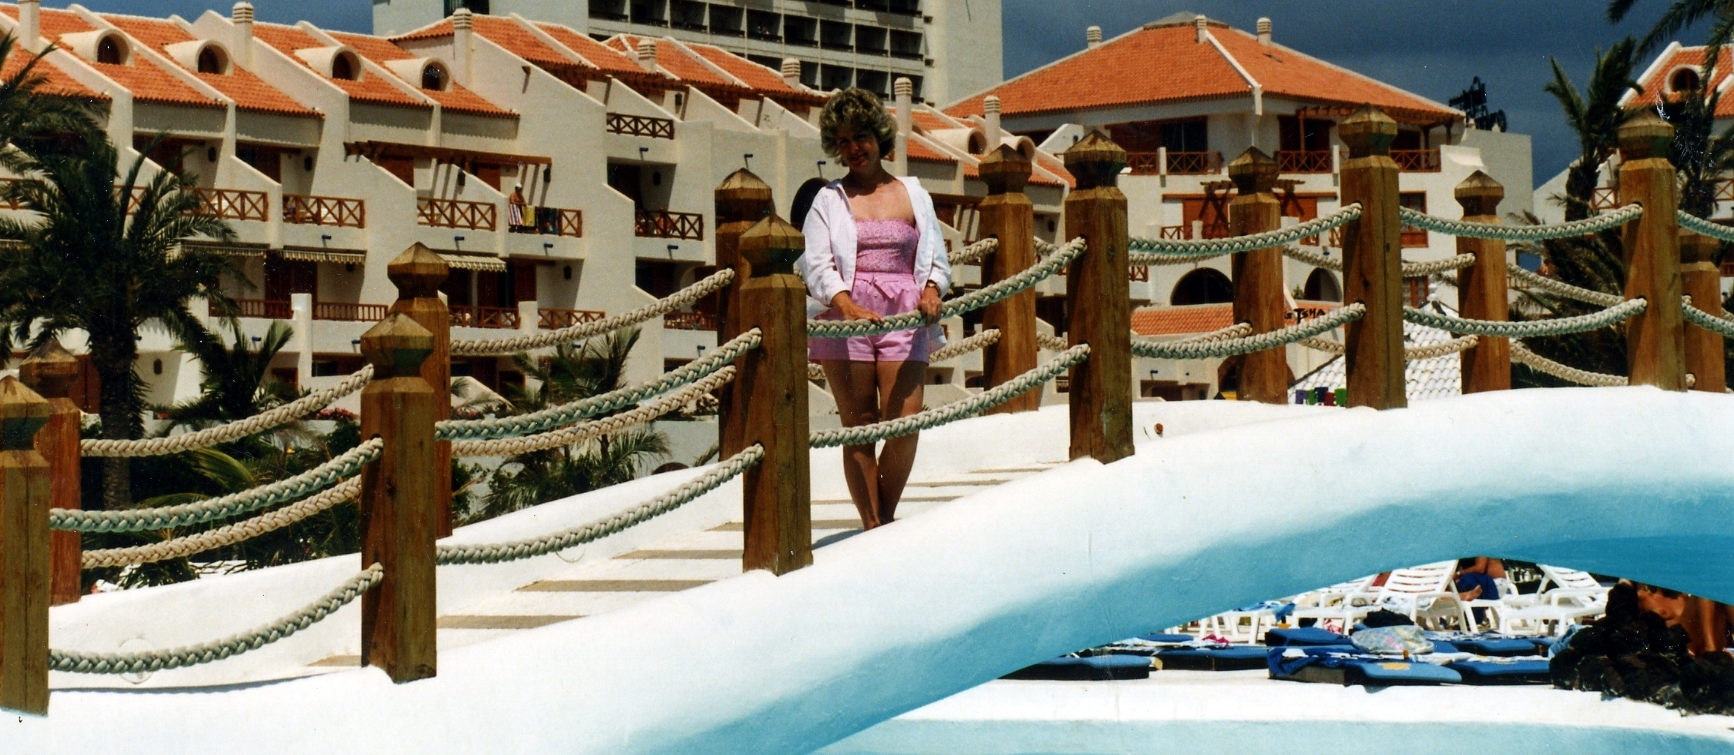 Mum: late 1980s. The big ugly block in the distance is the now-demolished Europa hotel